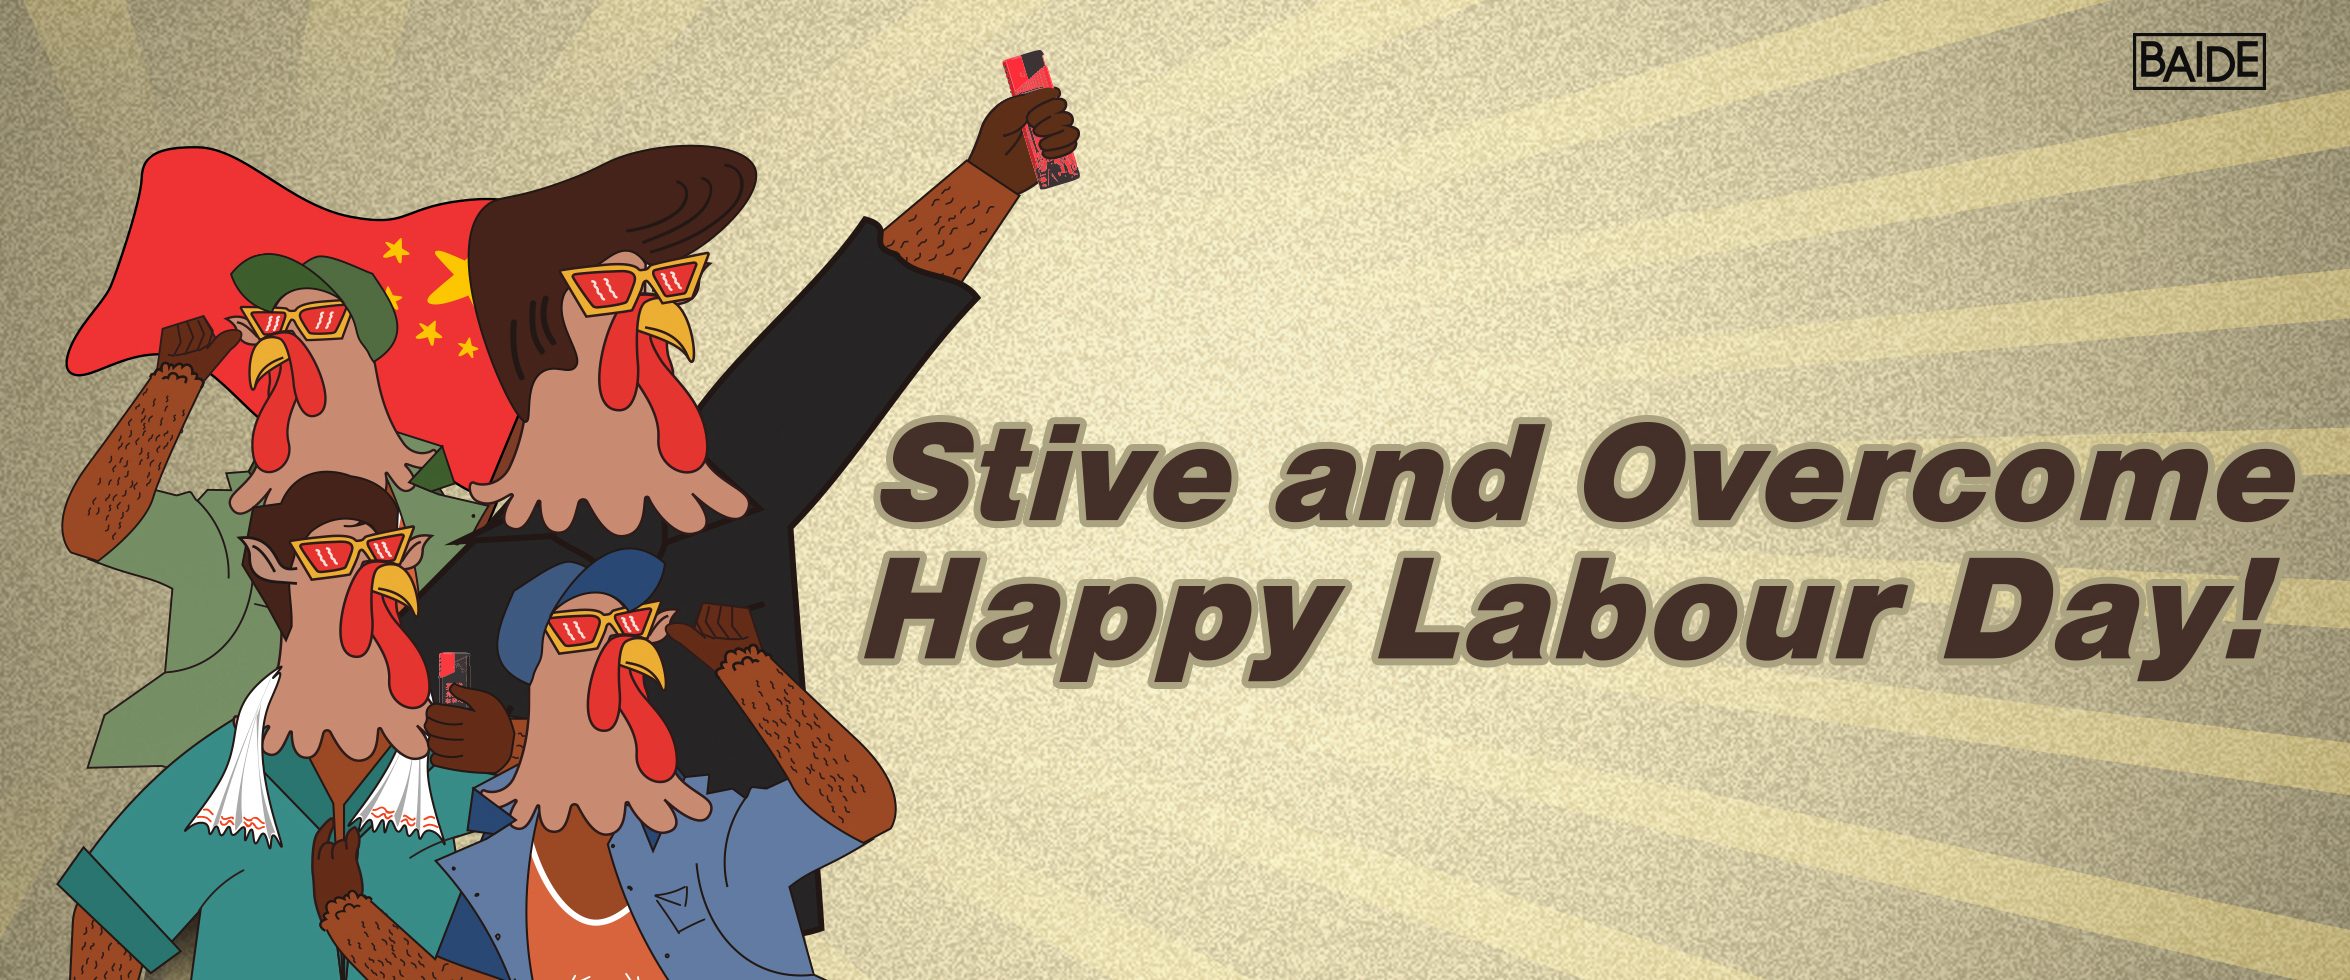 Strive and Overcome, Happy Labour Day!